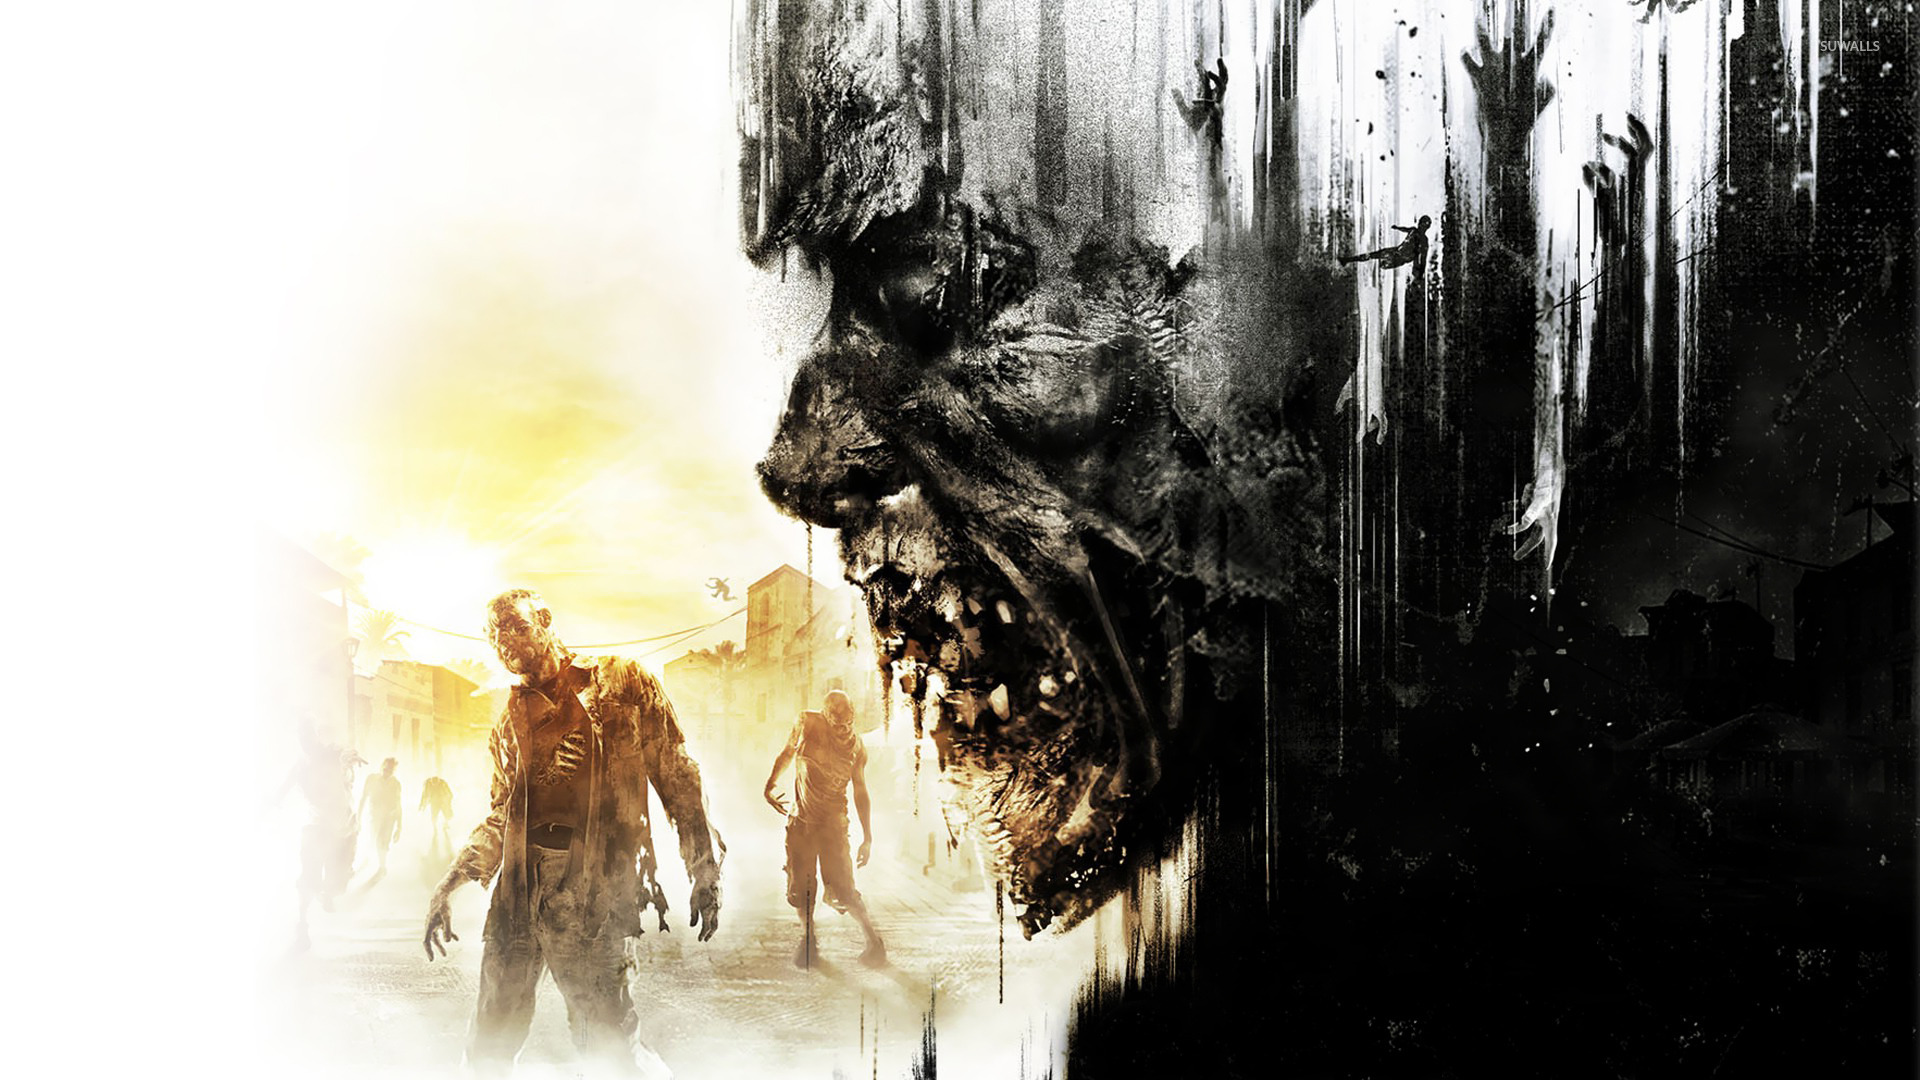 Dying Light wallpaper   Game wallpapers   21189 1920x1080